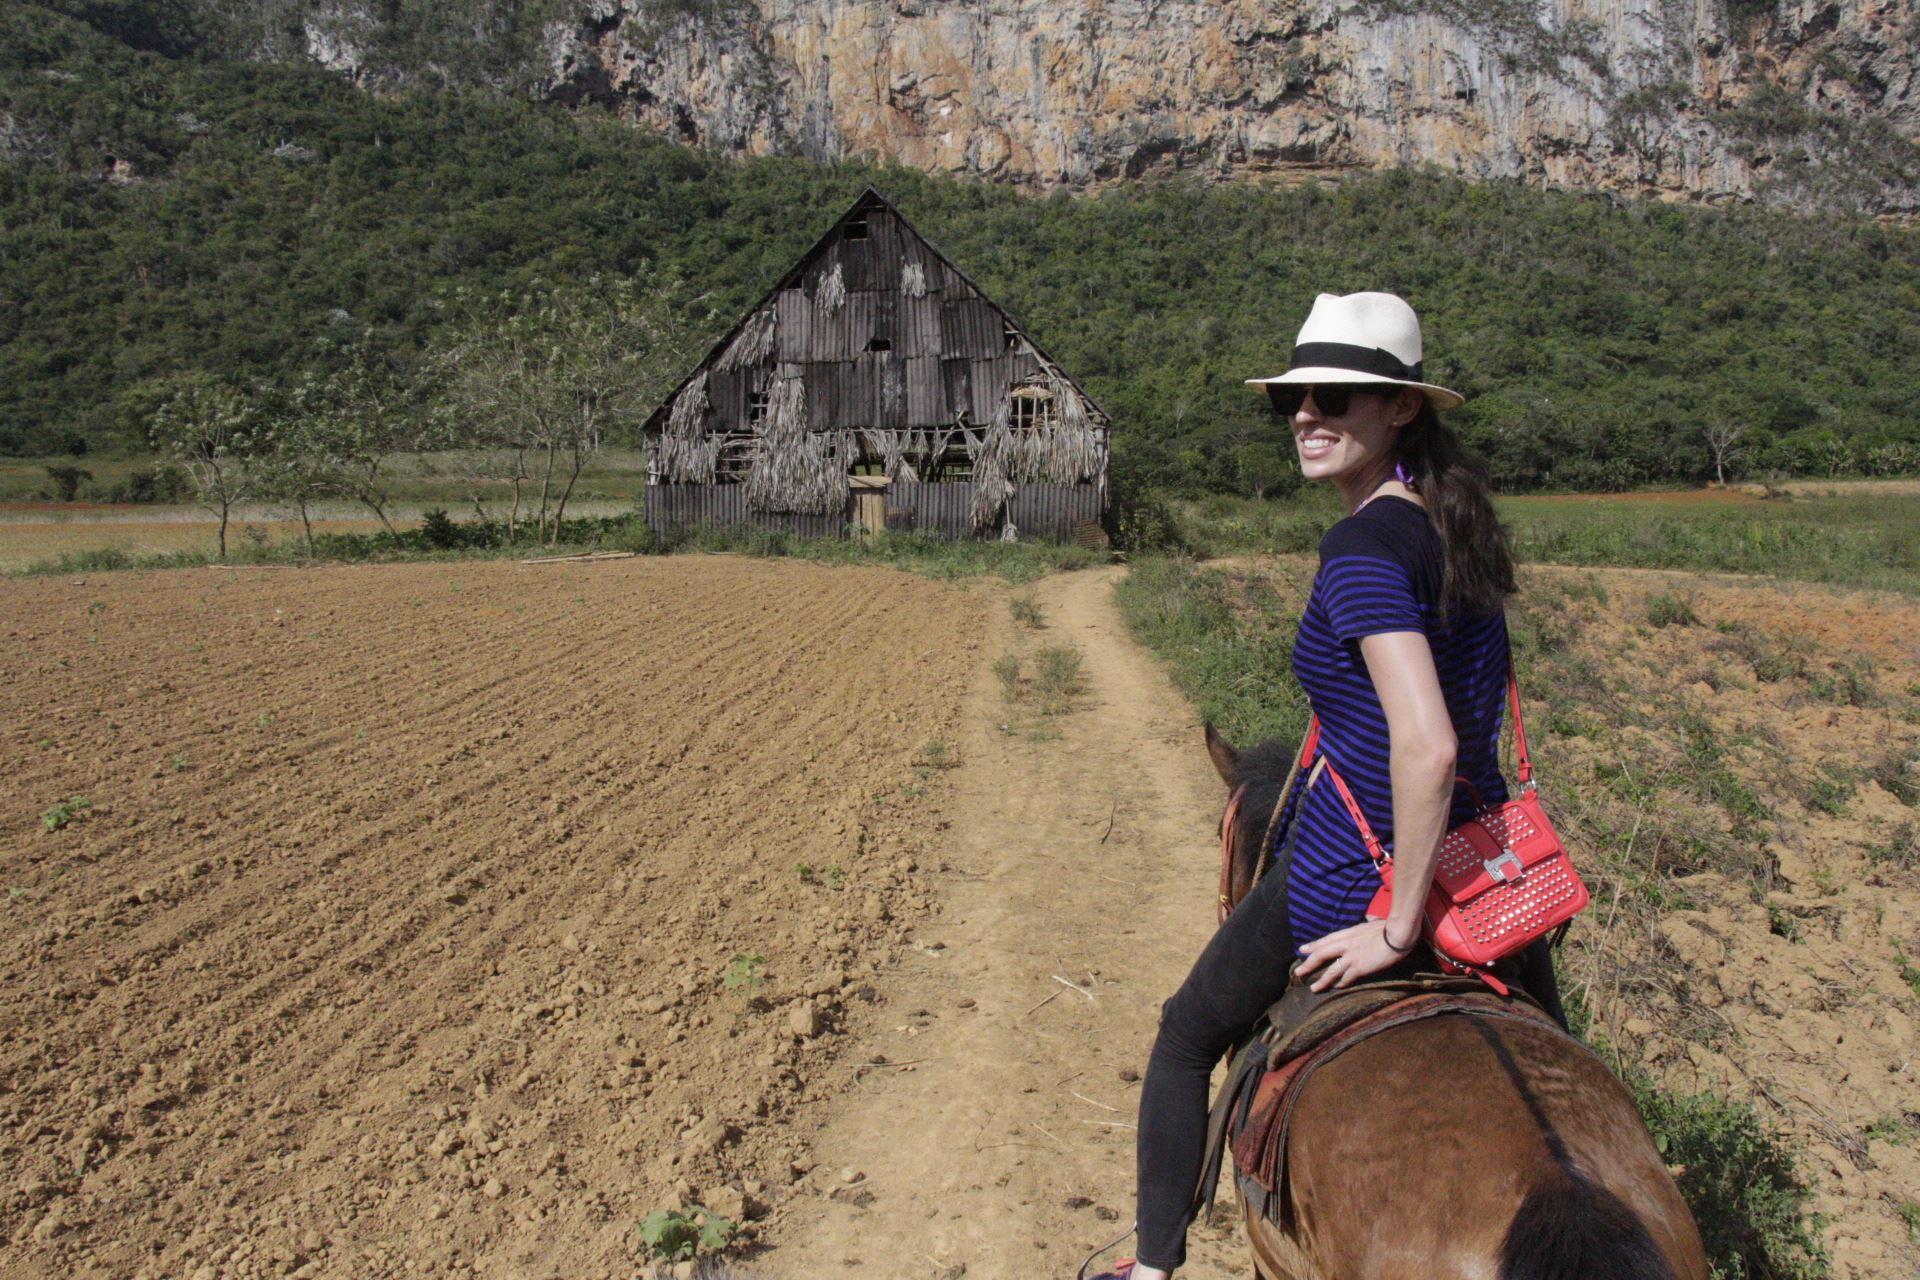 """Emily on horseback is a sight to see. Of course, no one told  Rebecca Minkoff that her purses needed to endure a trot or gallup. Here she is approaching the """"house"""" where farmers dry tobacco leaves."""